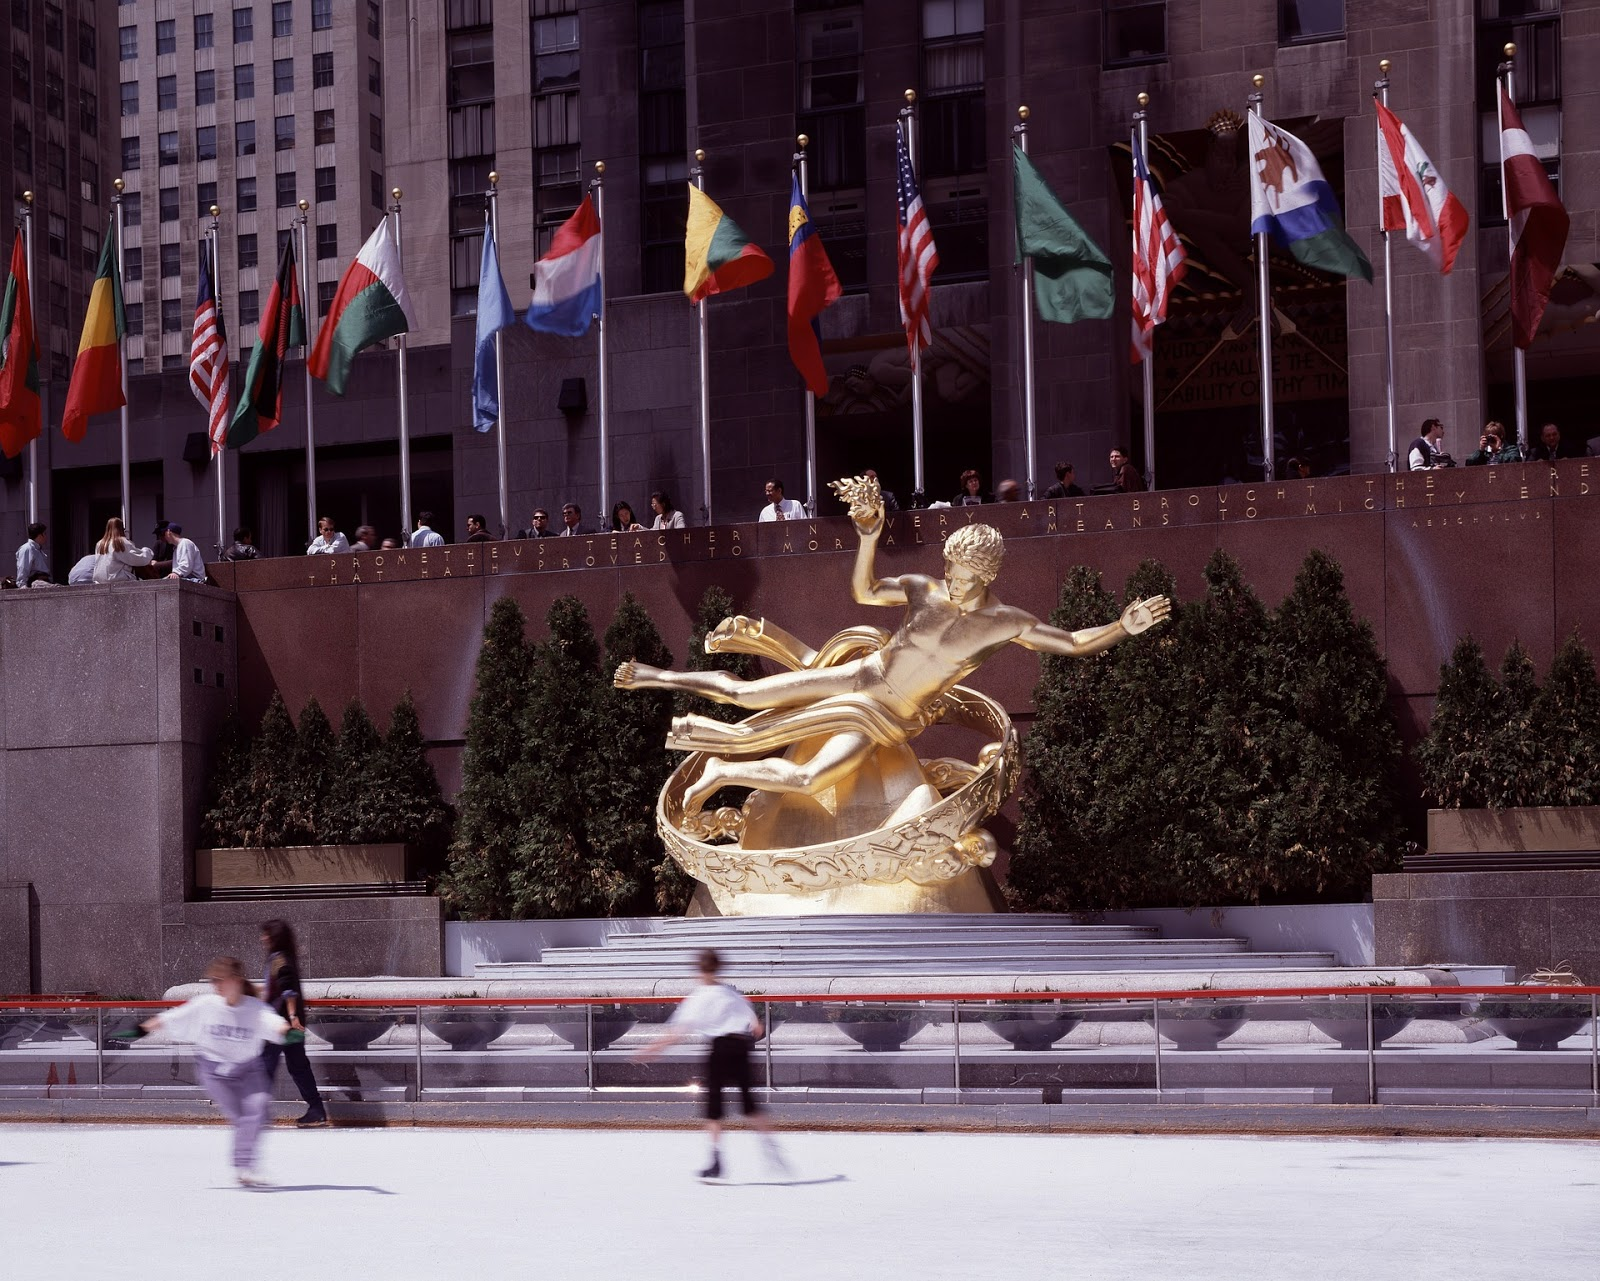 Rockefeller Plaza New York City USA